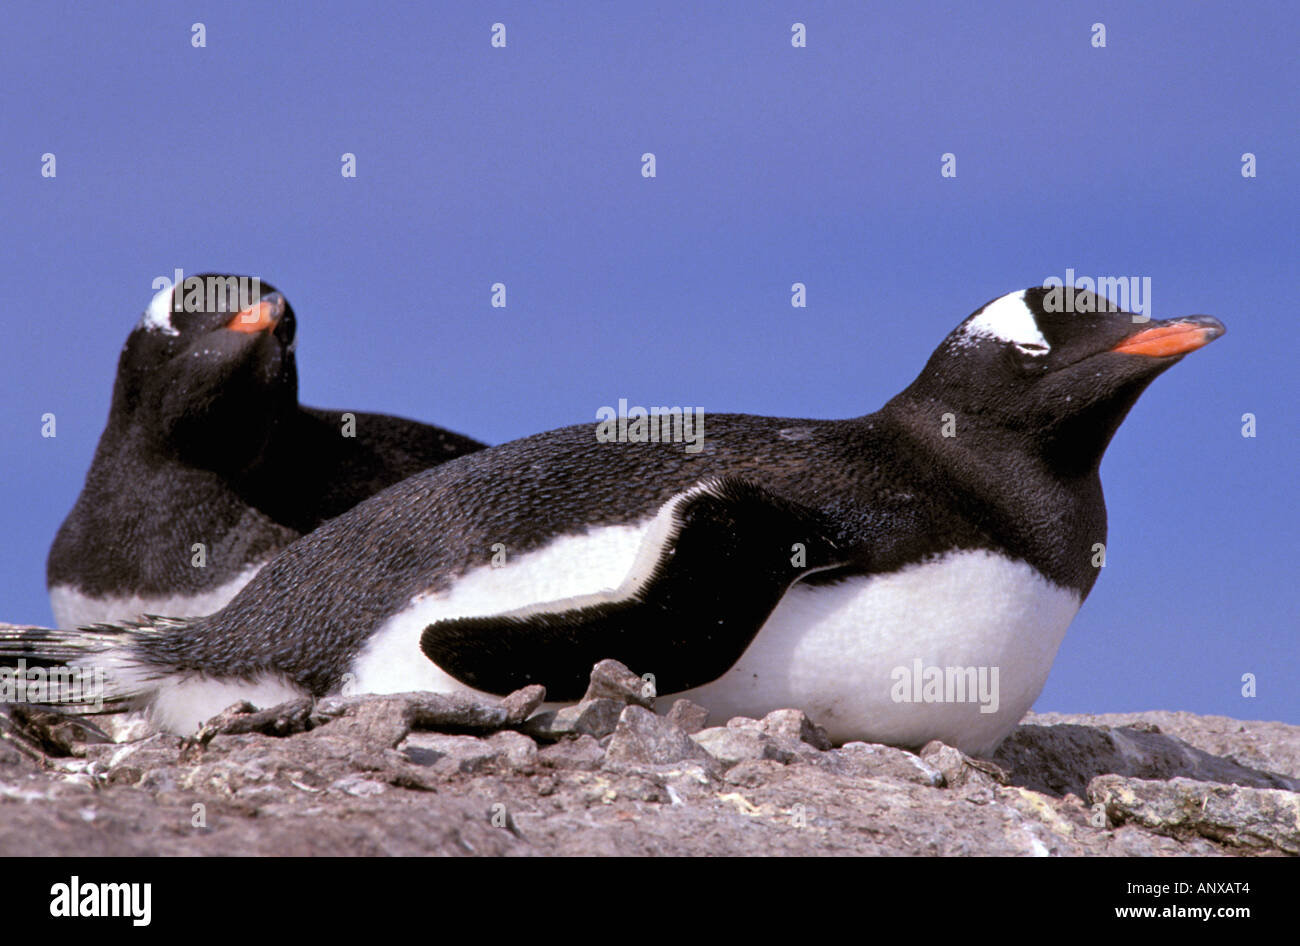 Antarctica, Antarctic Peninsula, Peterman Island. Gentoo Penguins (Pygoscelis papua) Stock Photo